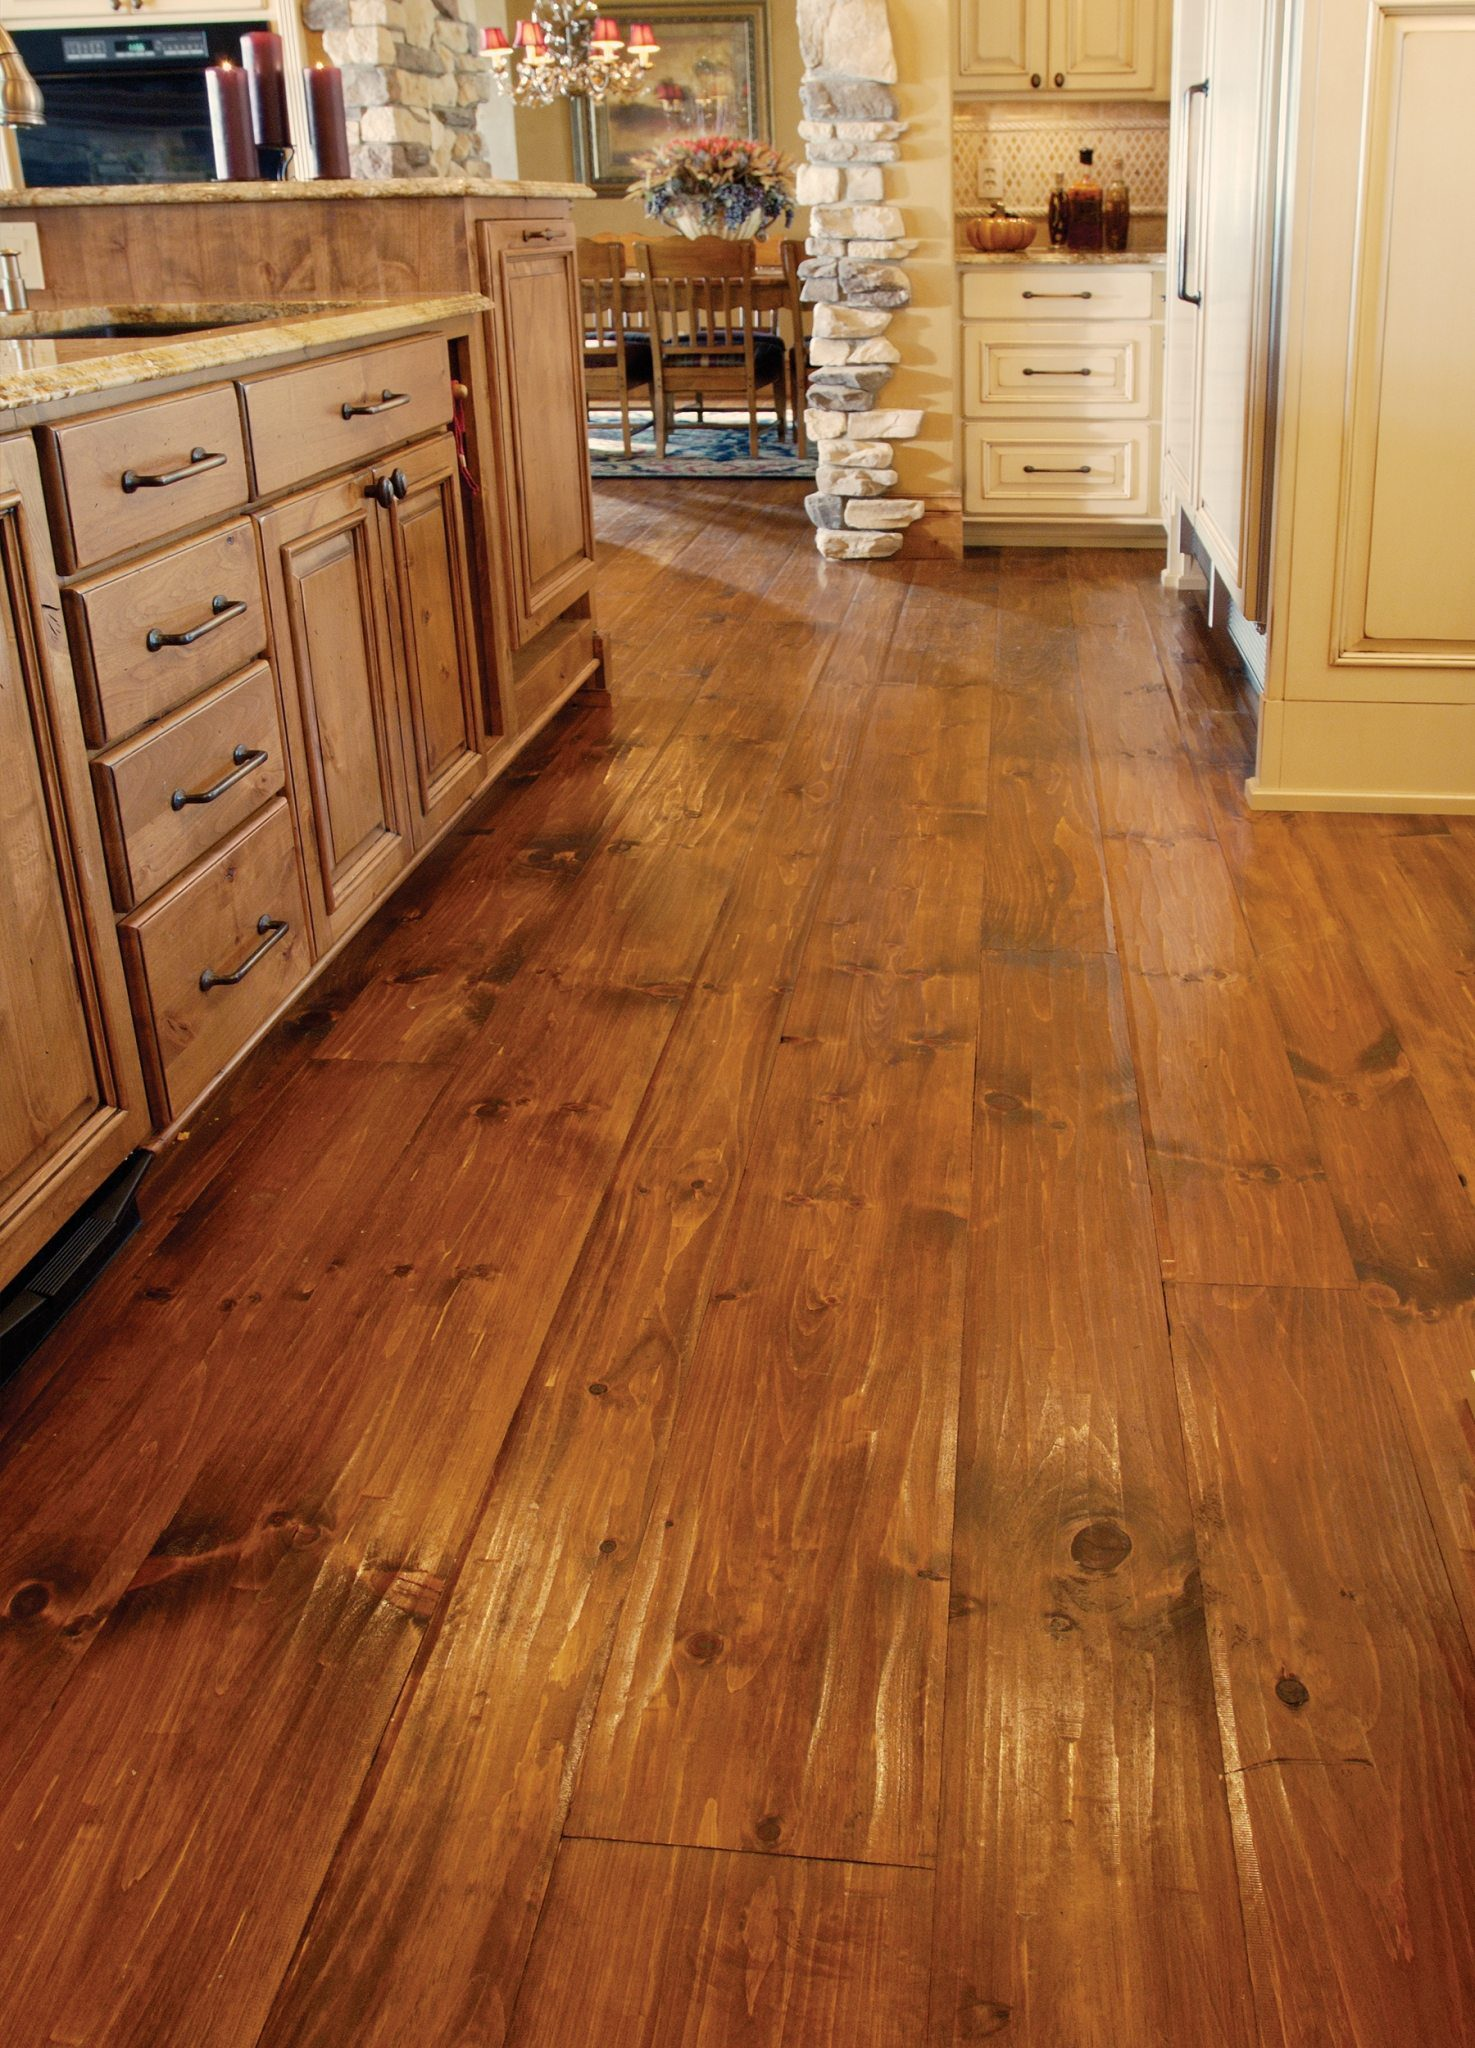 Eastern White Pine Flooring In A Kitchen